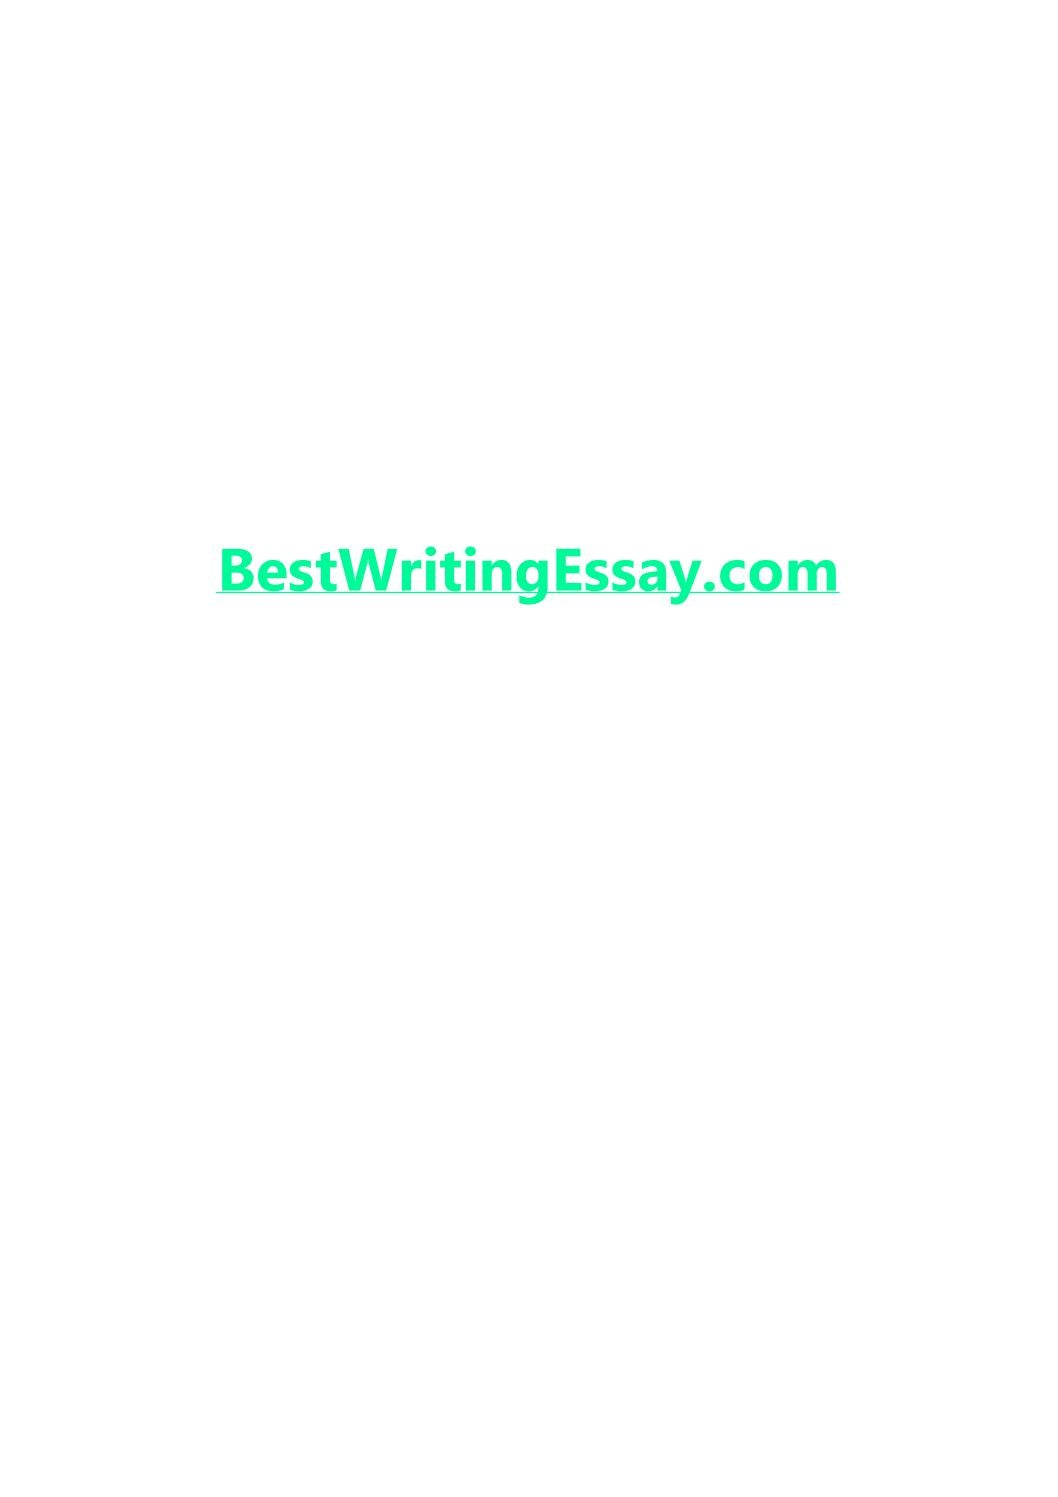 Essays writers service usa